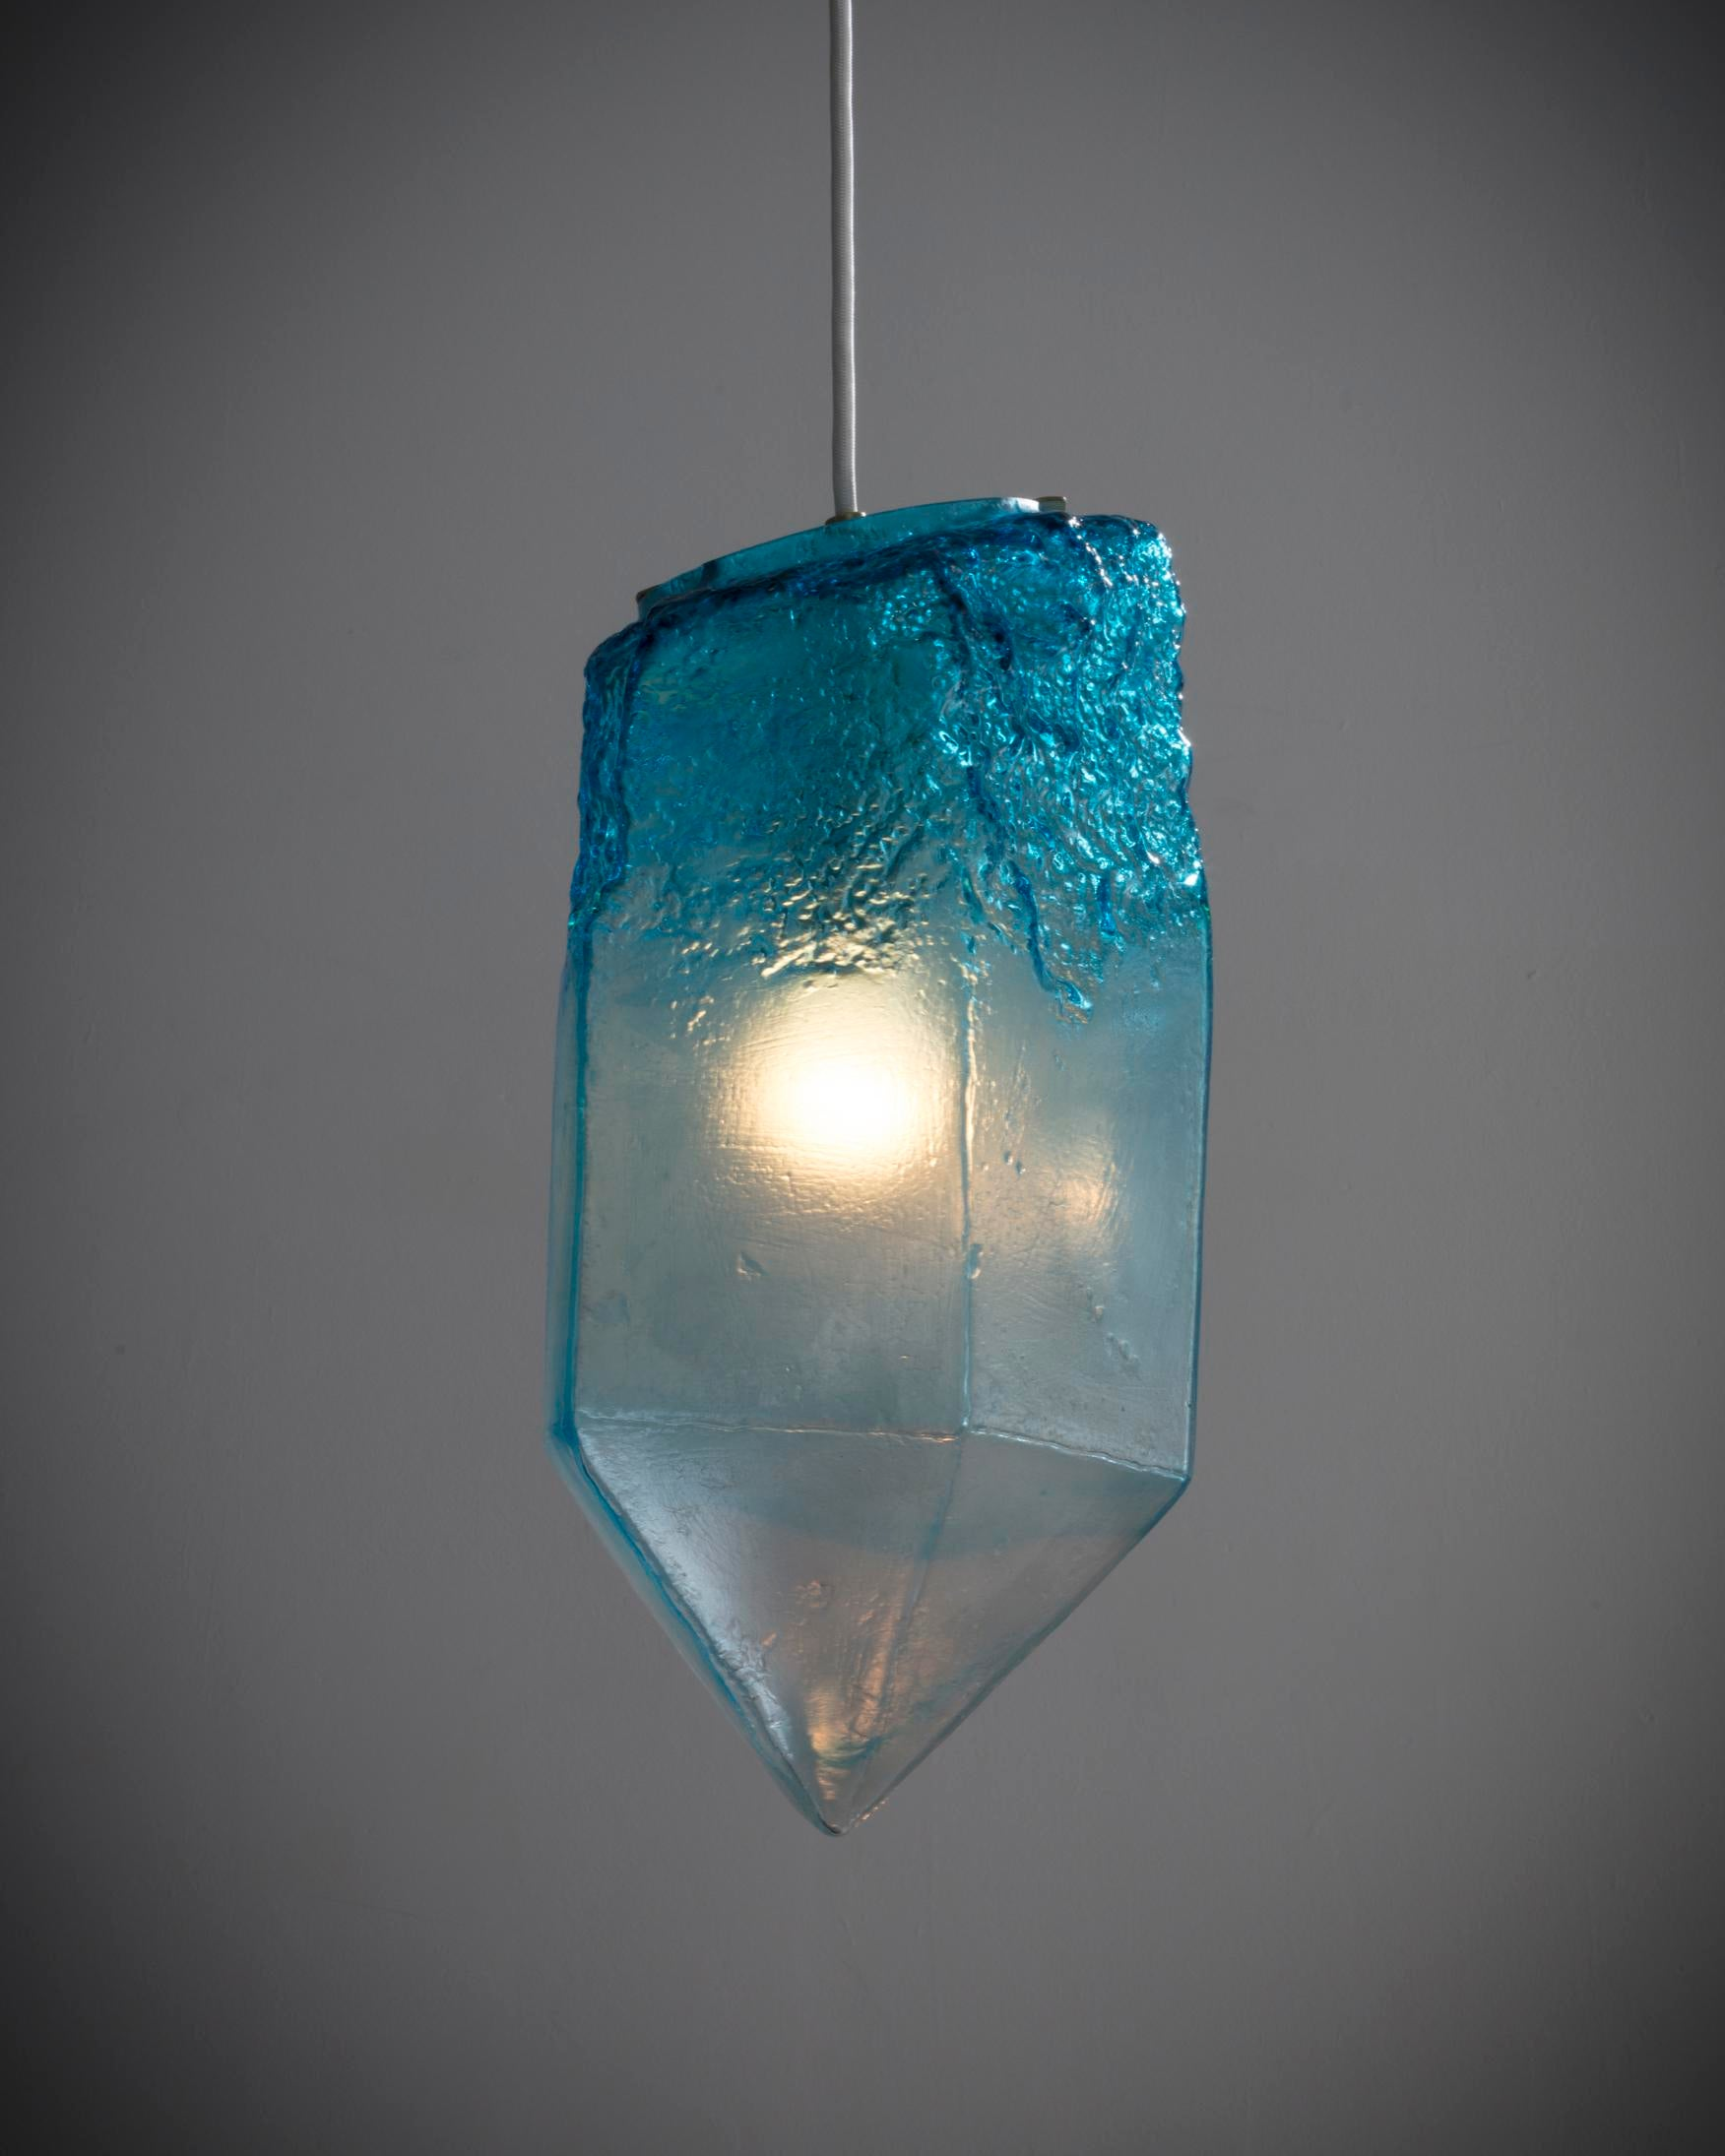 Zimmerman lighting Lighting Design Contemporary Illuminated Handblown Turquoise Glass Crystal Pendant By Jeff Zimmerman For Sale Image Decaso Highend Illuminated Handblown Turquoise Glass Crystal Pendant By